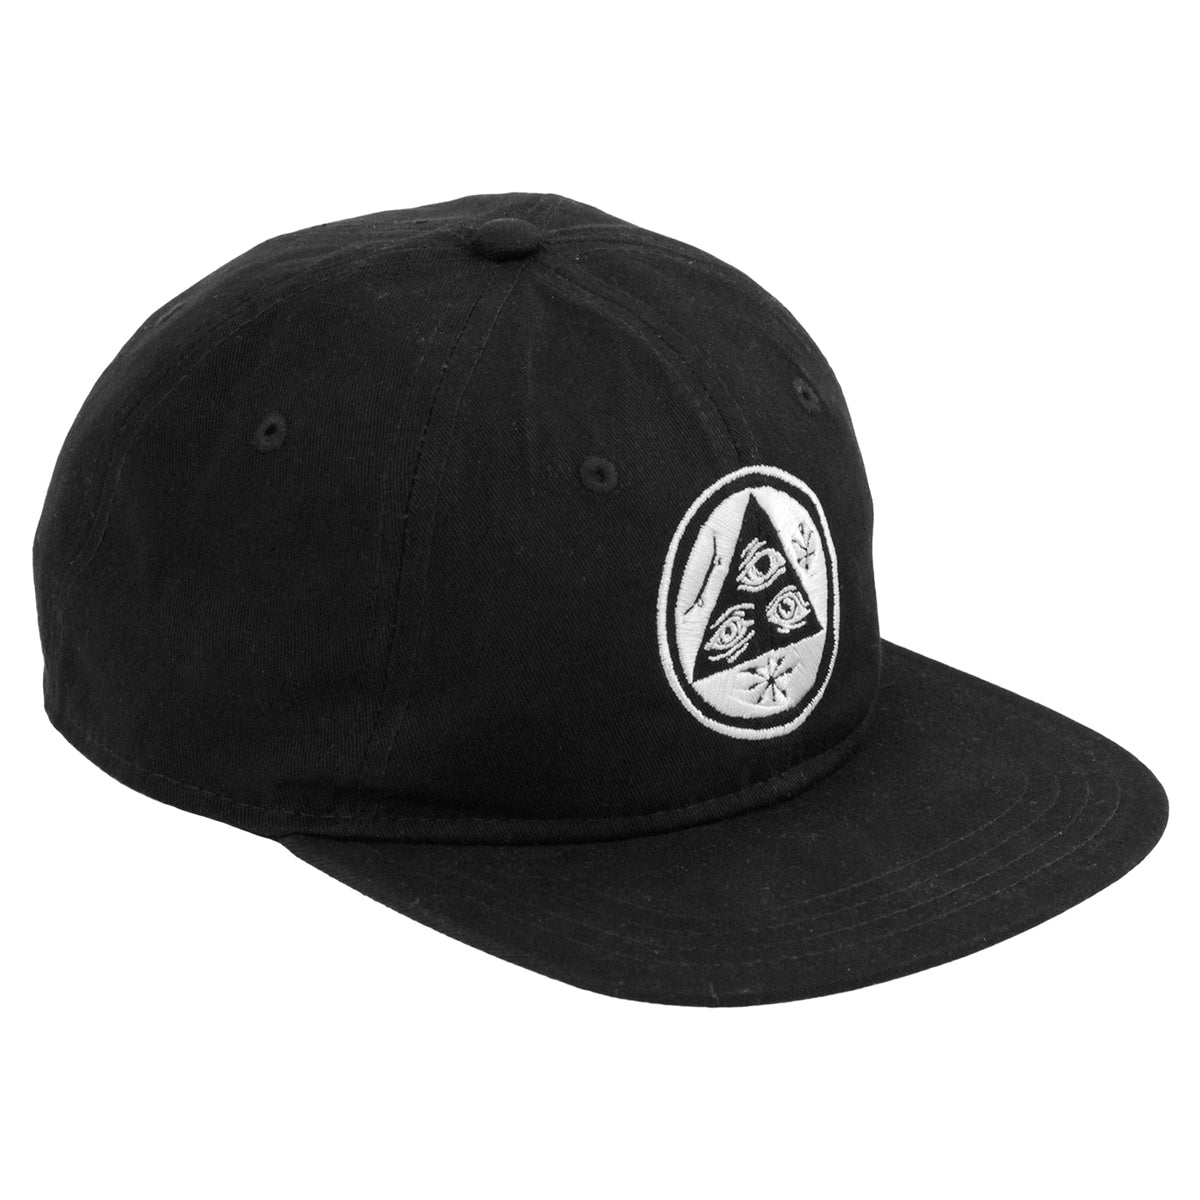 4e88a15836395 Talisman Unstructured Snapback Cap in Black by Welcome Skateboards ...